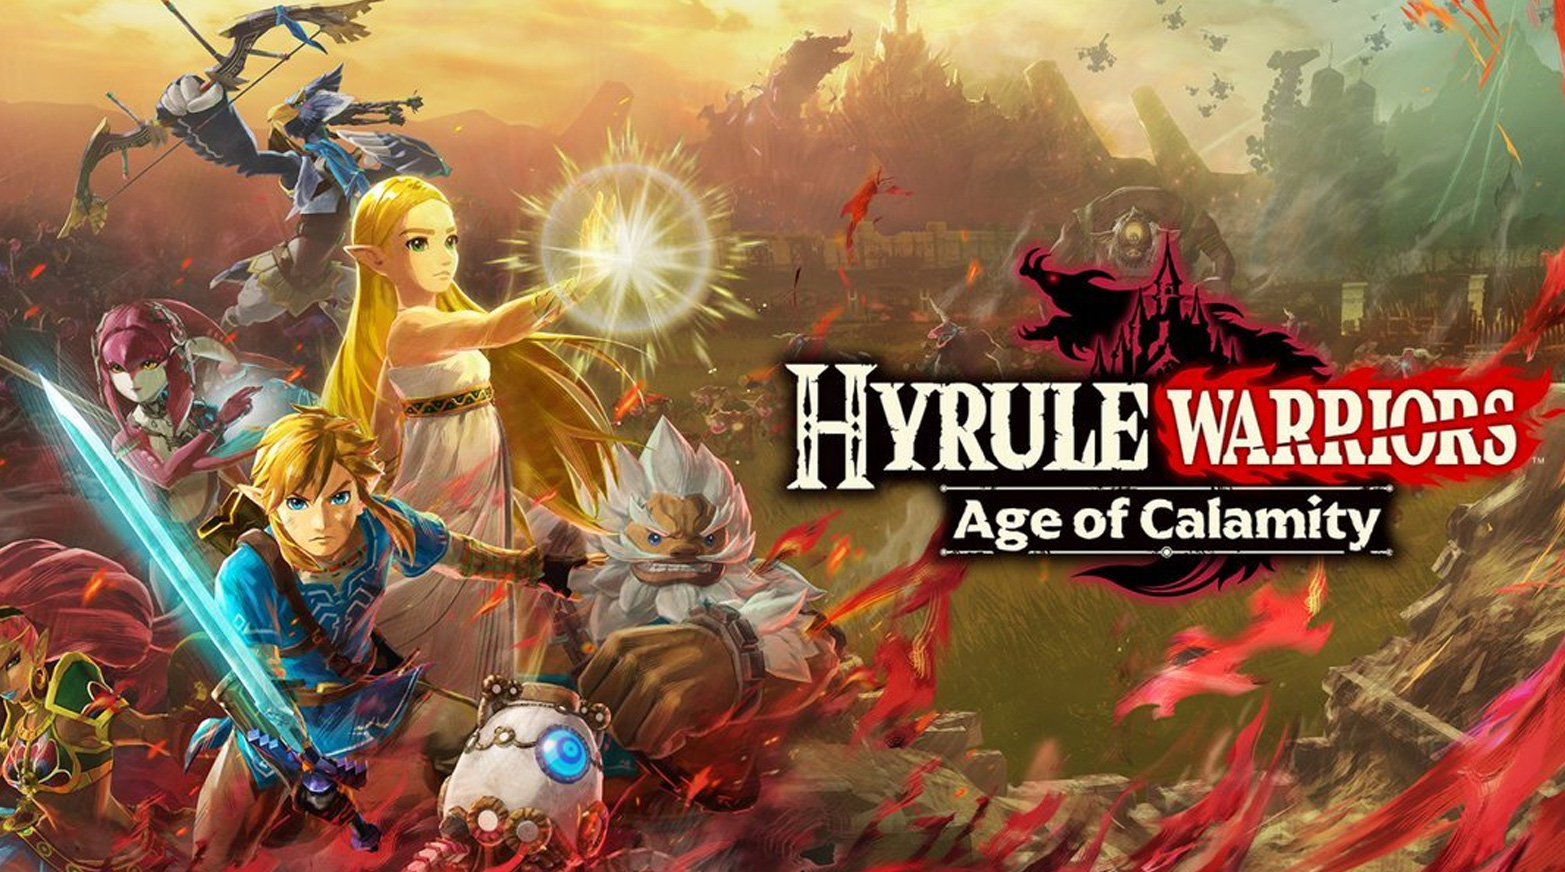 How To Use Rusty Weapons In Hyrule Warriors Age Of Calamity